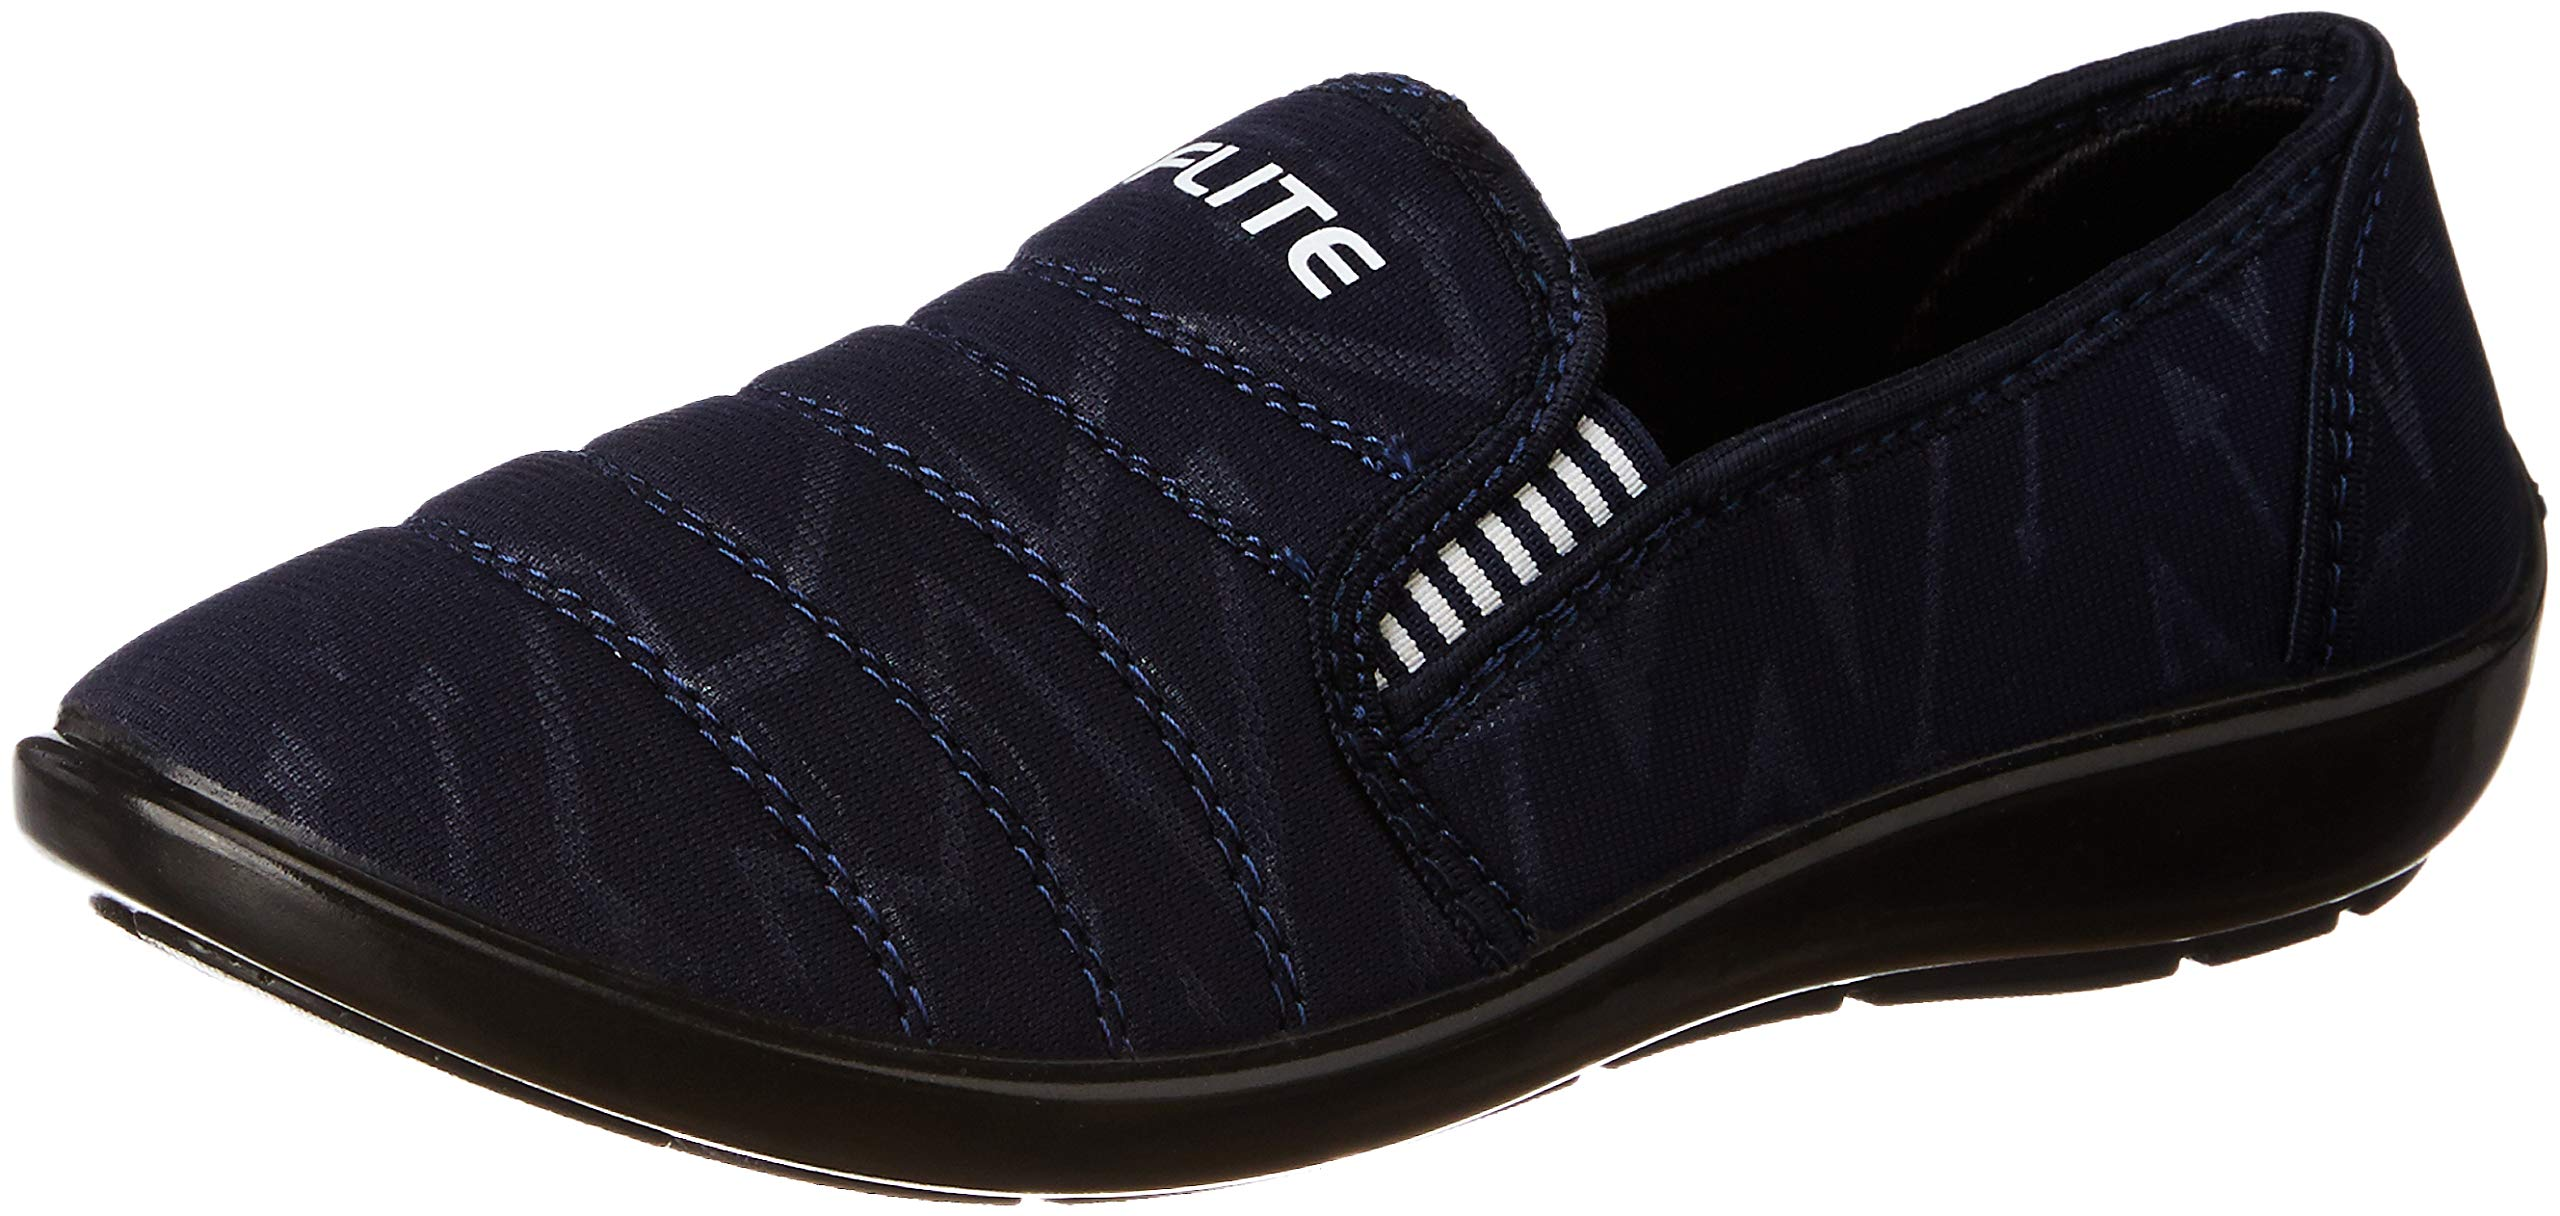 FLITE Women's Loafers